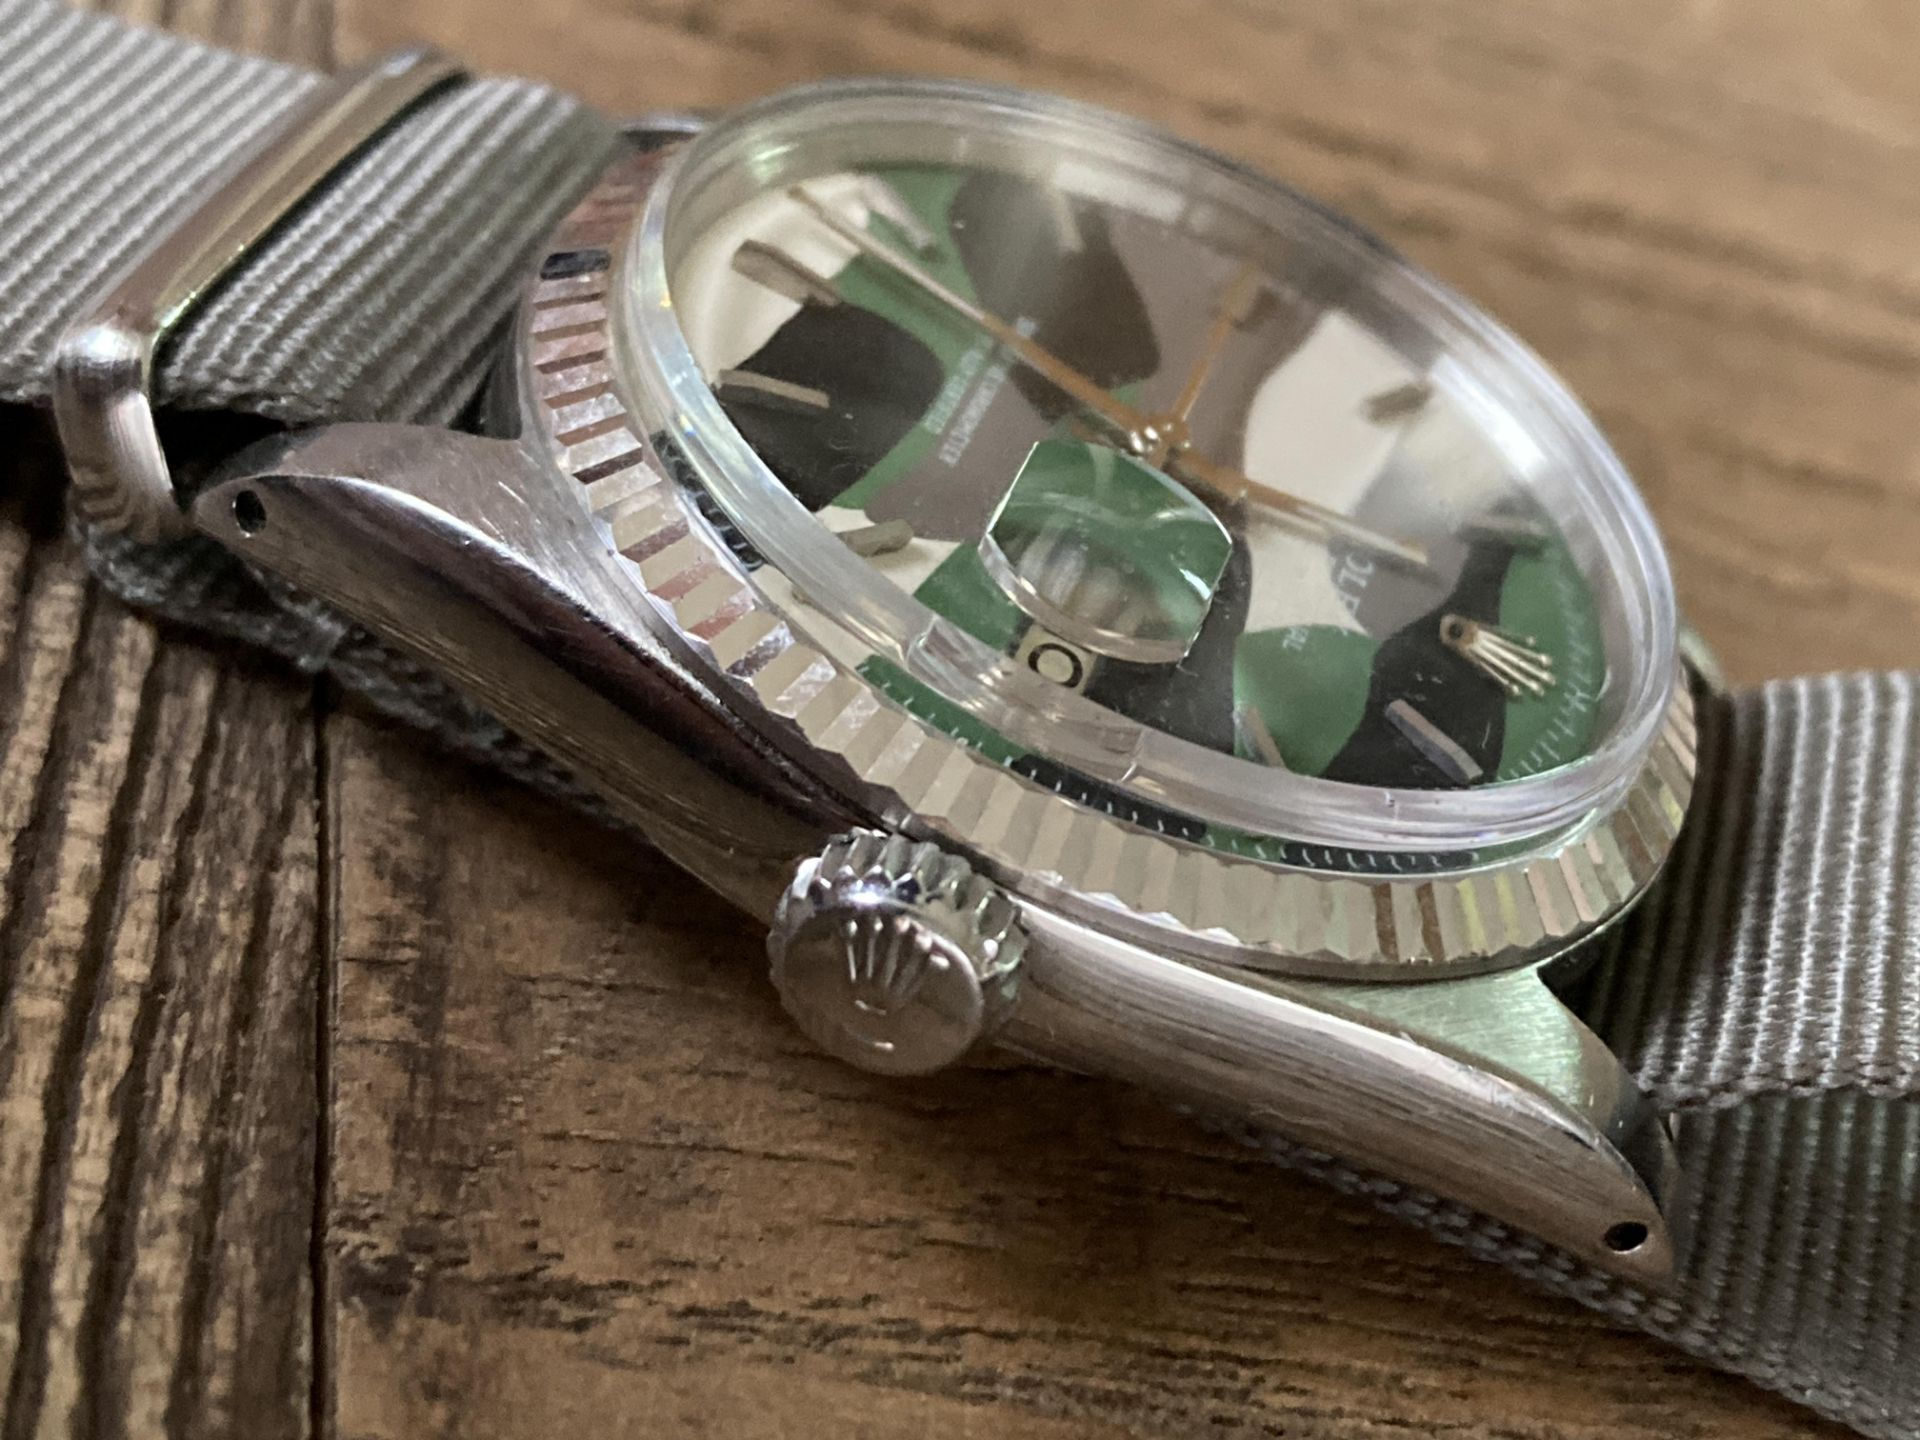 ROLEX DATEJUST 1601 - FLUTED BEZEL, CAMO DIAL - Image 3 of 5